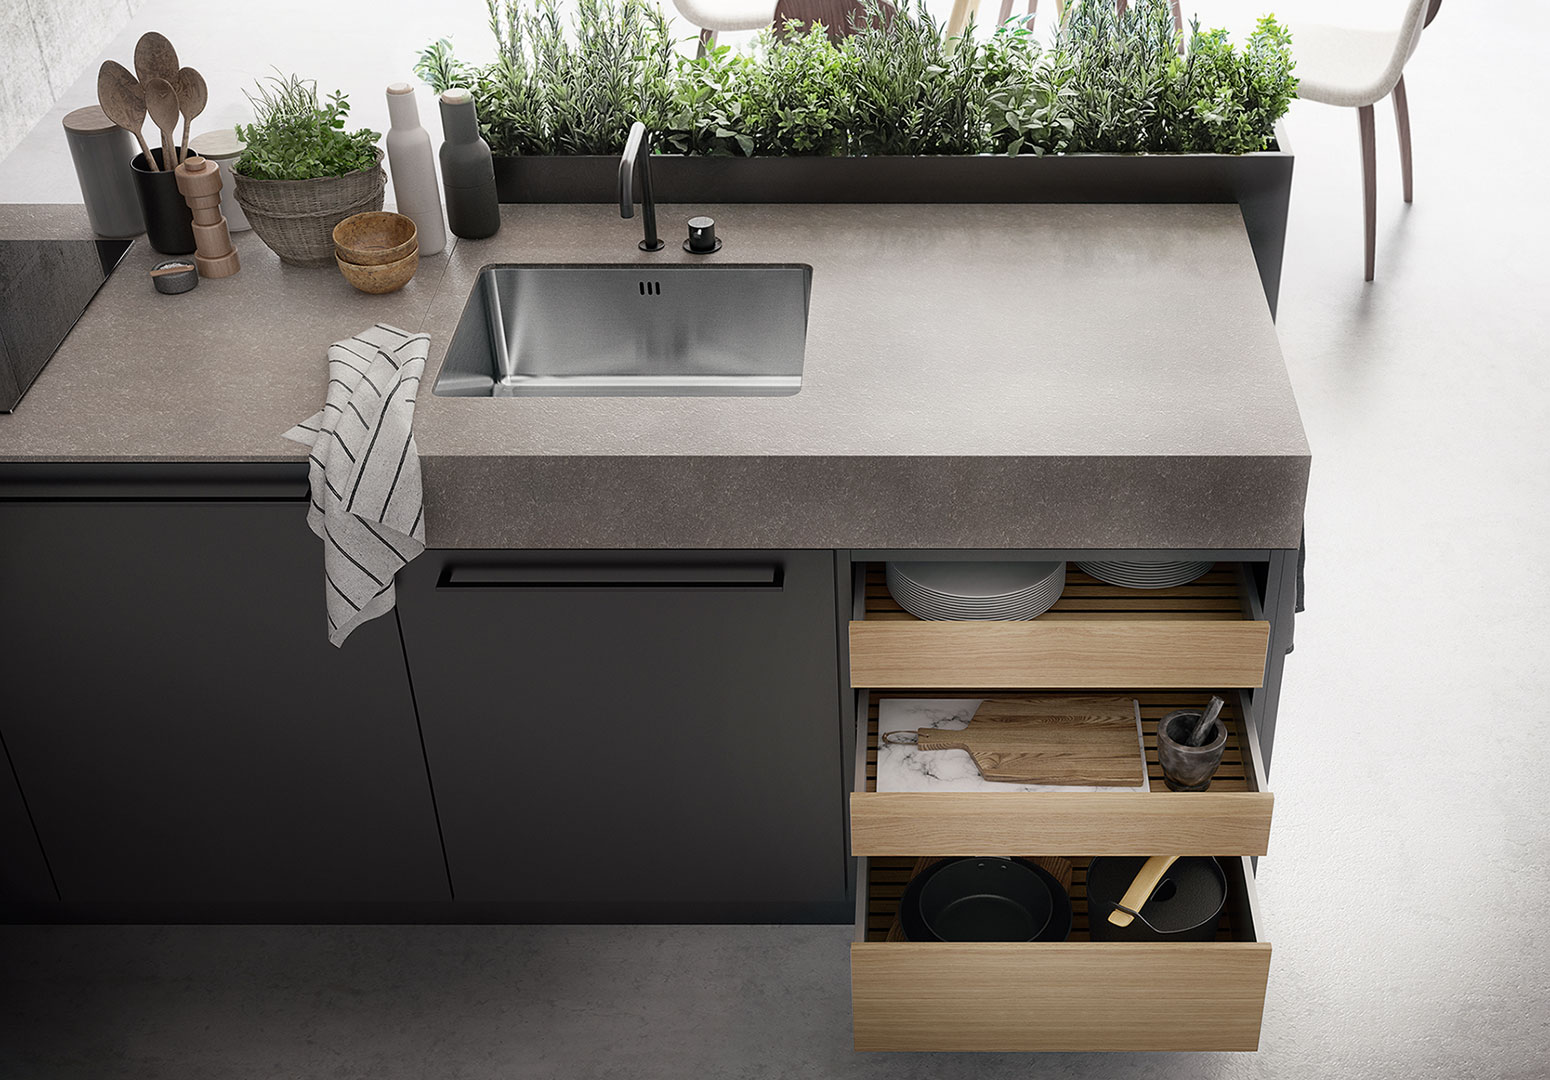 & SieMatic URBAN style collection